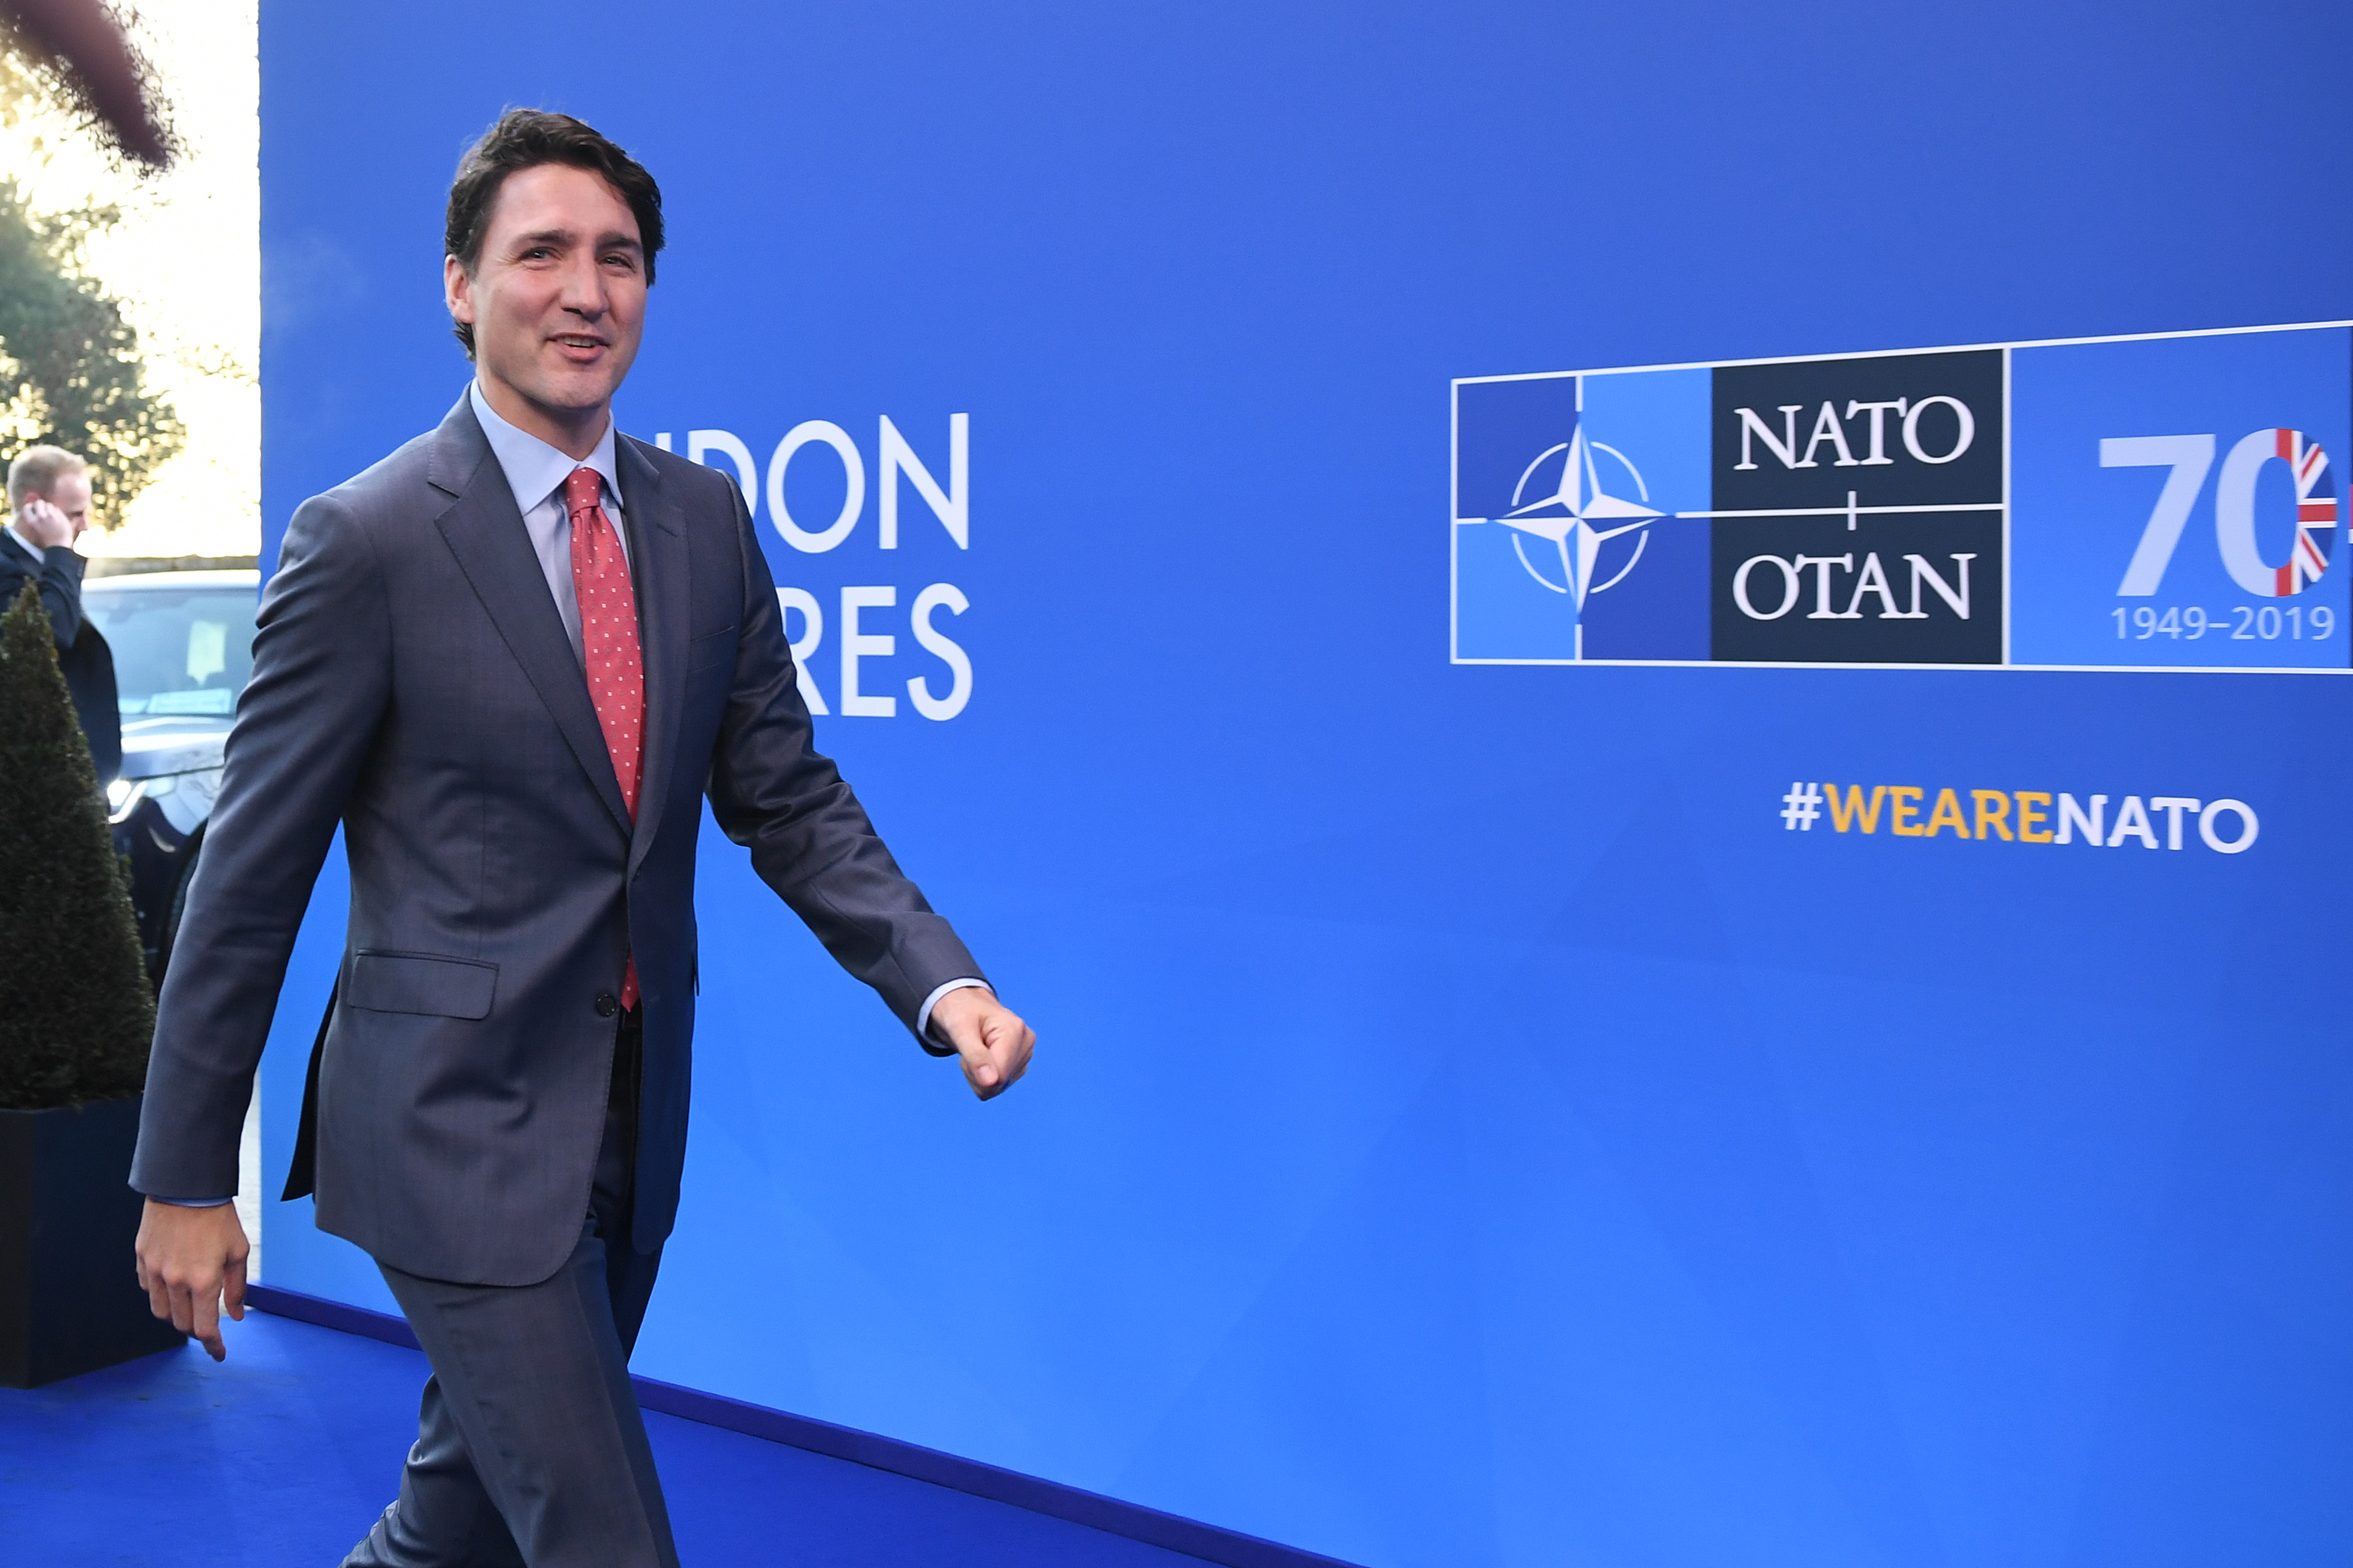 Prime Minister of Canada, Justin Trudeau arrives for the annual Nato heads of government summit at The Grove hotel in Watford, Hertfordshire. PA Photo. Picture date: Wednesday December 4, 2019. See PA story POLITICS Nato. Photo credit should read: Chris J Ratcliffe/PA Wire